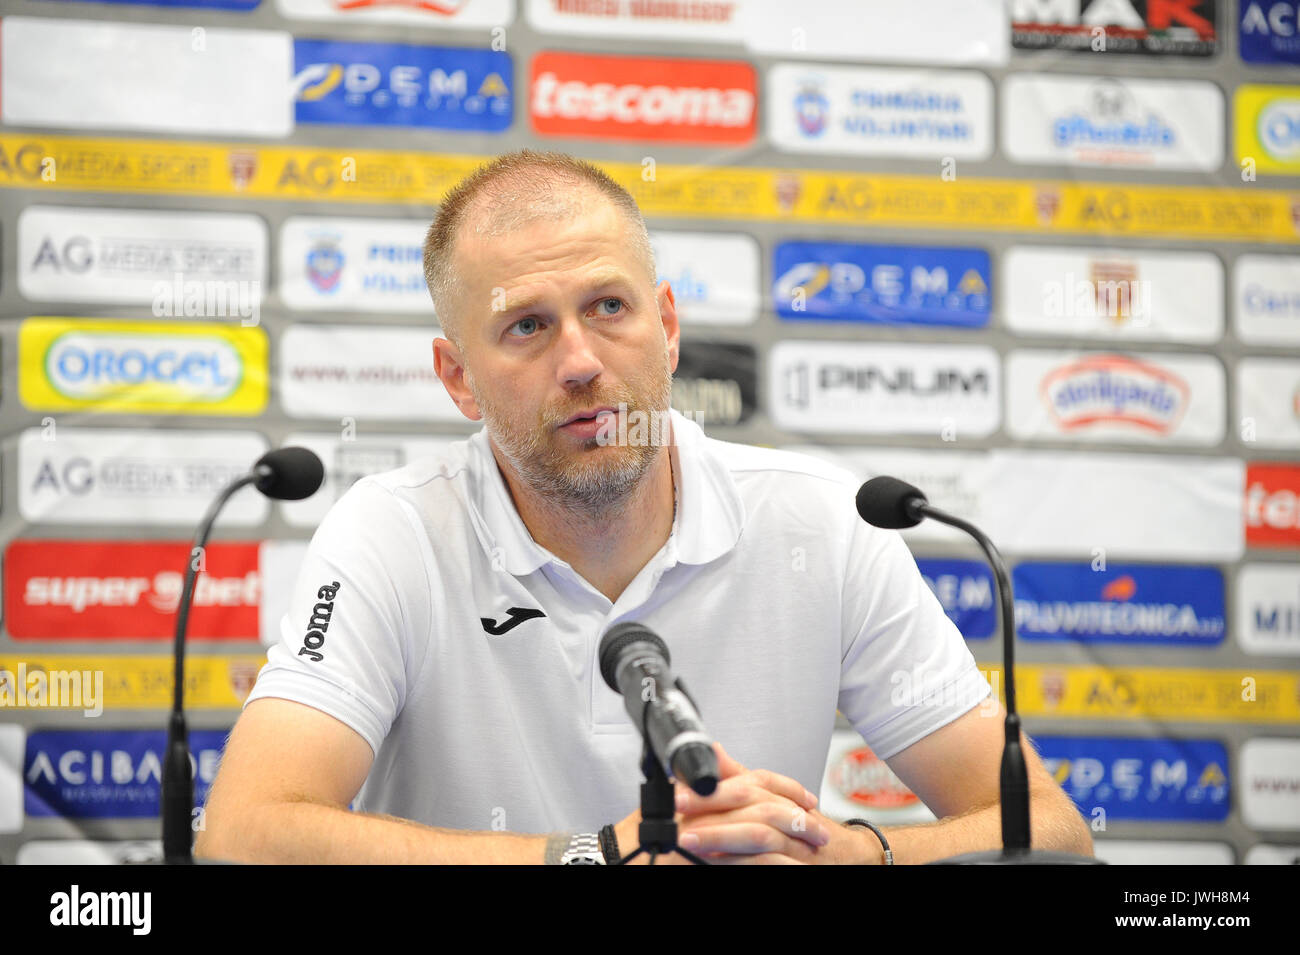 Edward Iordanescu, the head coach of FC Astra Giurgiu - Liga 1 (Romanian Football League One) game between FC Voluntari - Stock Image